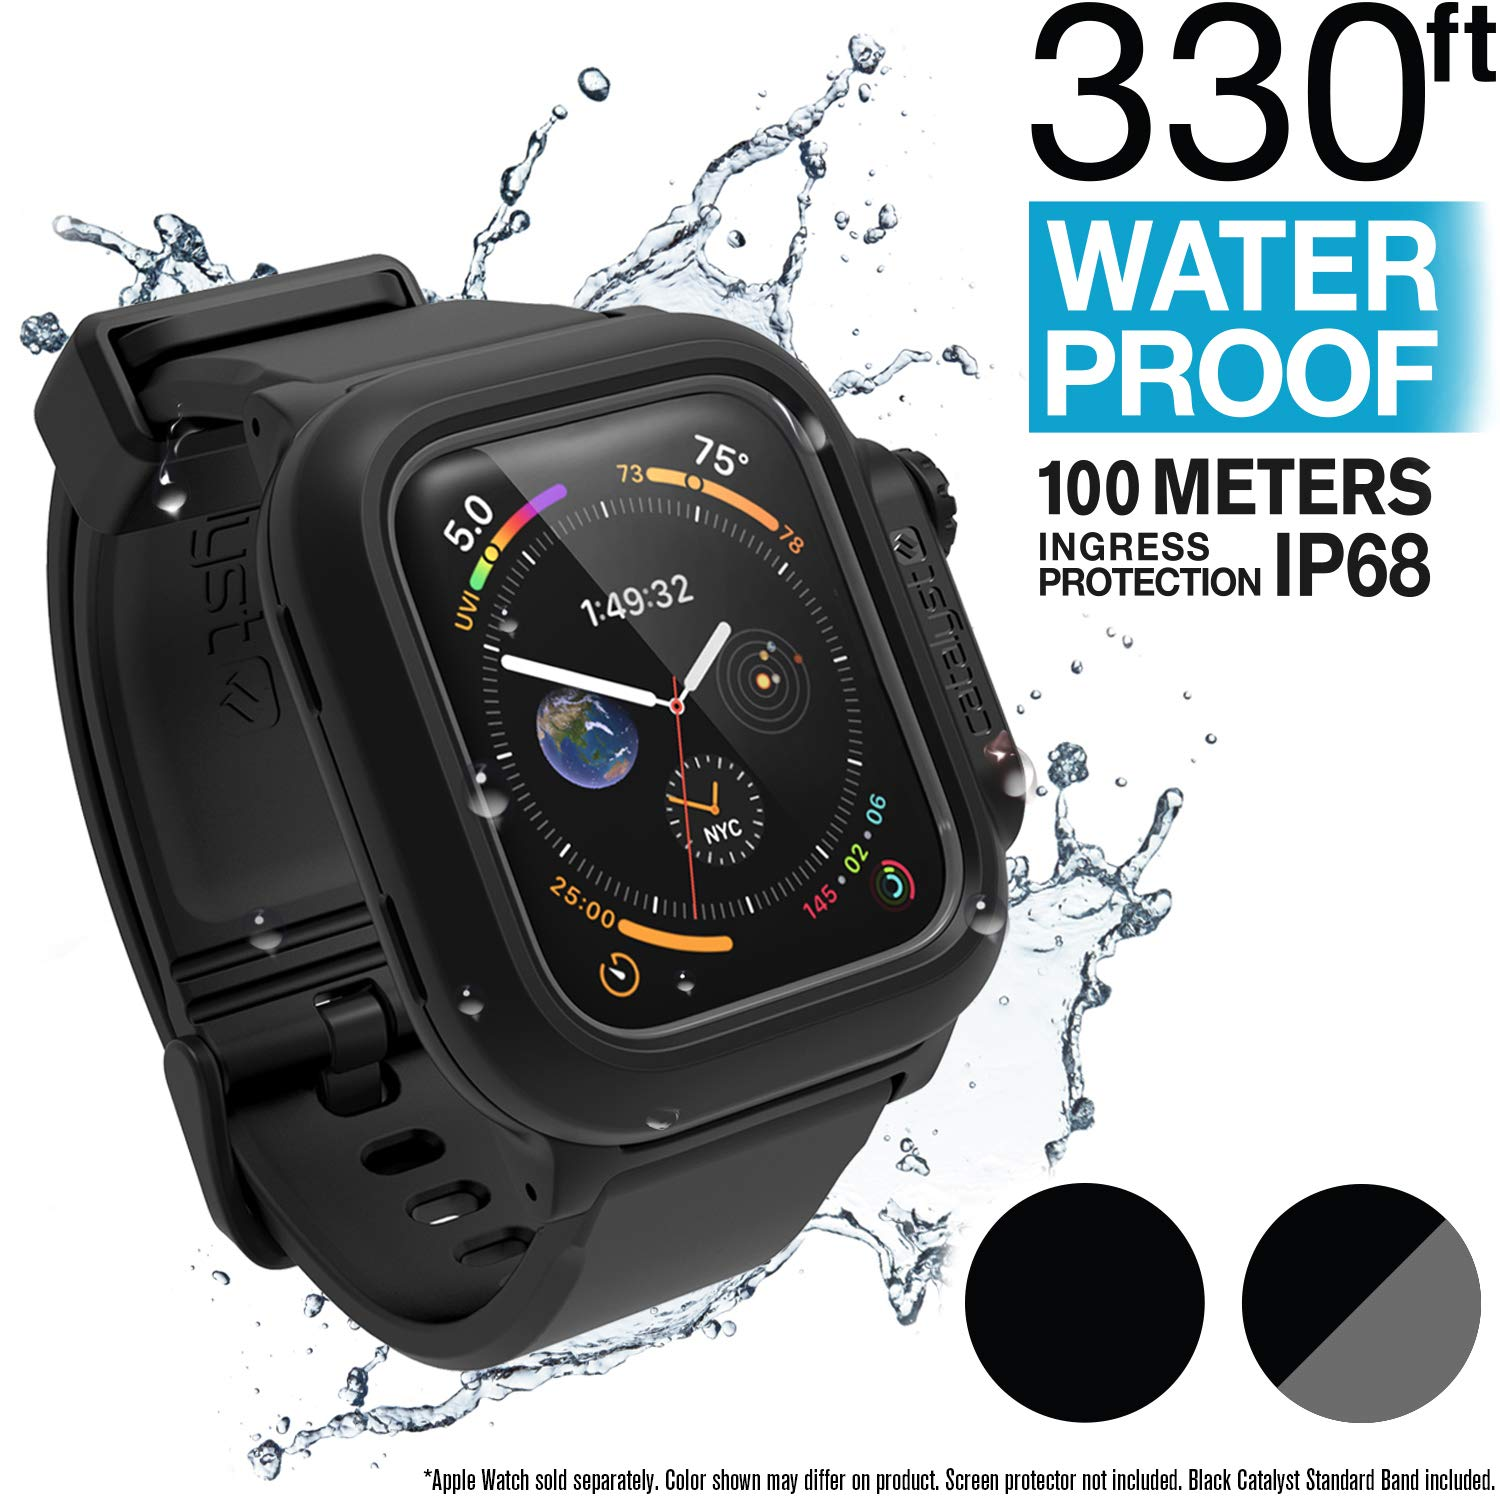 Catalyst Waterproof Apple Watch Case Series 4 44mm with Premium Soft Silicone Apple Watch Band, Shock Proof Impact Resistant [Rugged iWatch Protective case] - Stealth Black by Catalyst (Image #1)